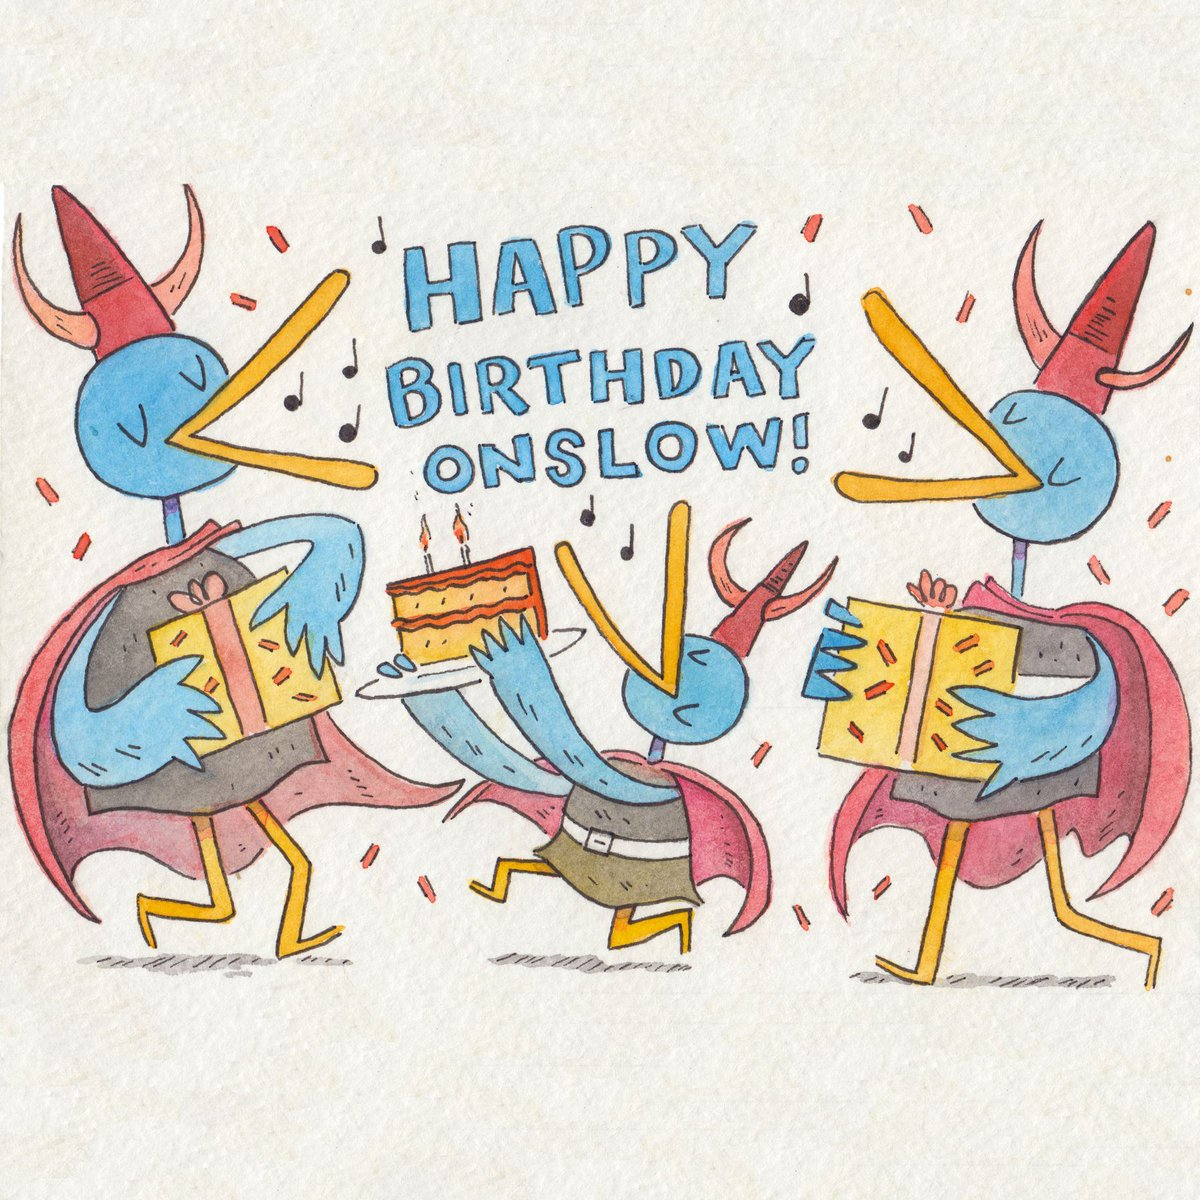 Rory Lucey On Twitter A Card For My Nephew His Birthday They